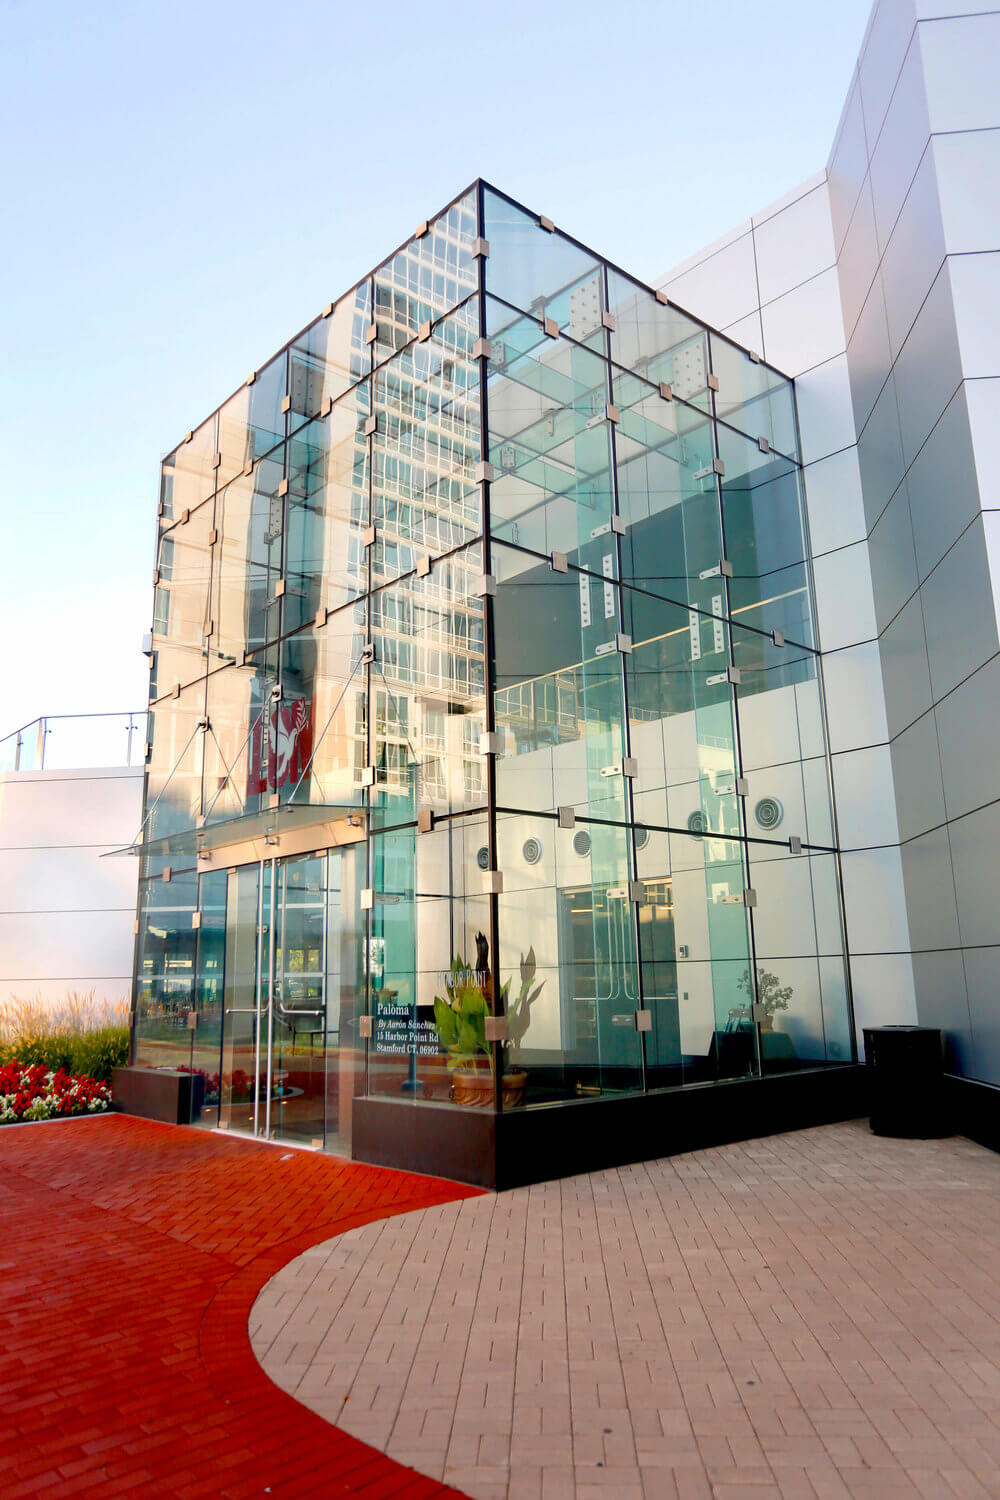 Architectural Photography from Connecticut, building with glass walls